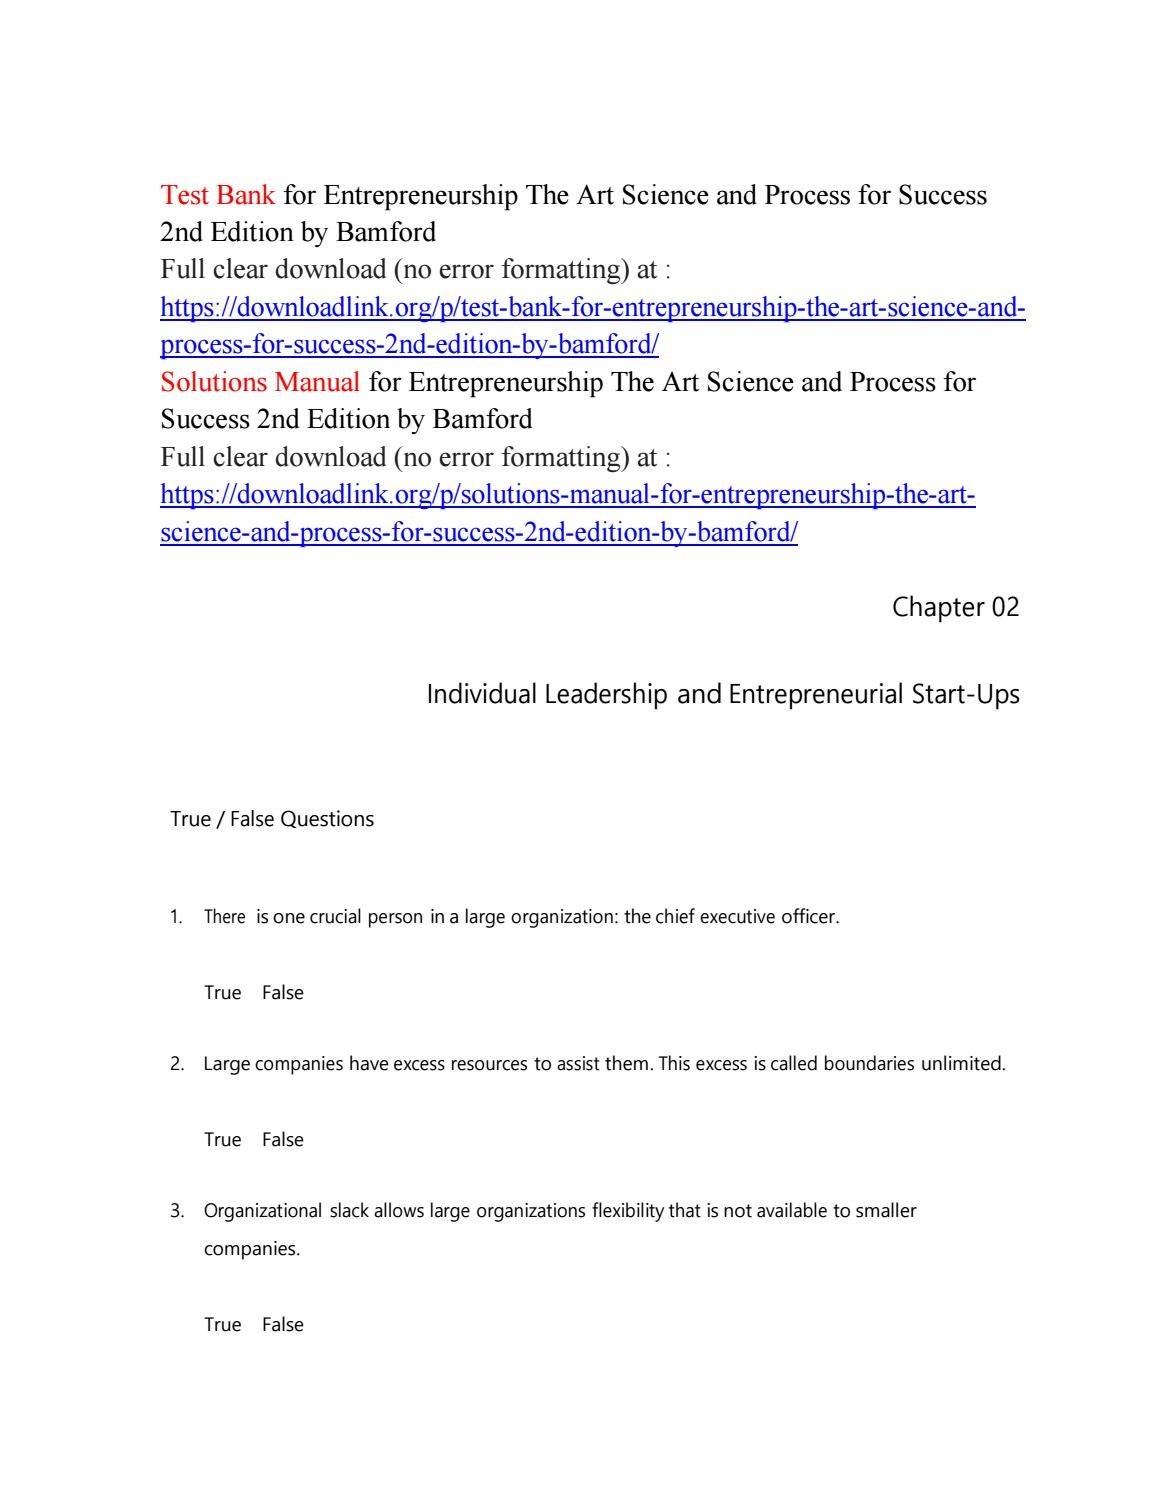 Test Bank for Entrepreneurship The Art Science and Process for Success 2nd  Edition by Bamford by mory46463 - issuu